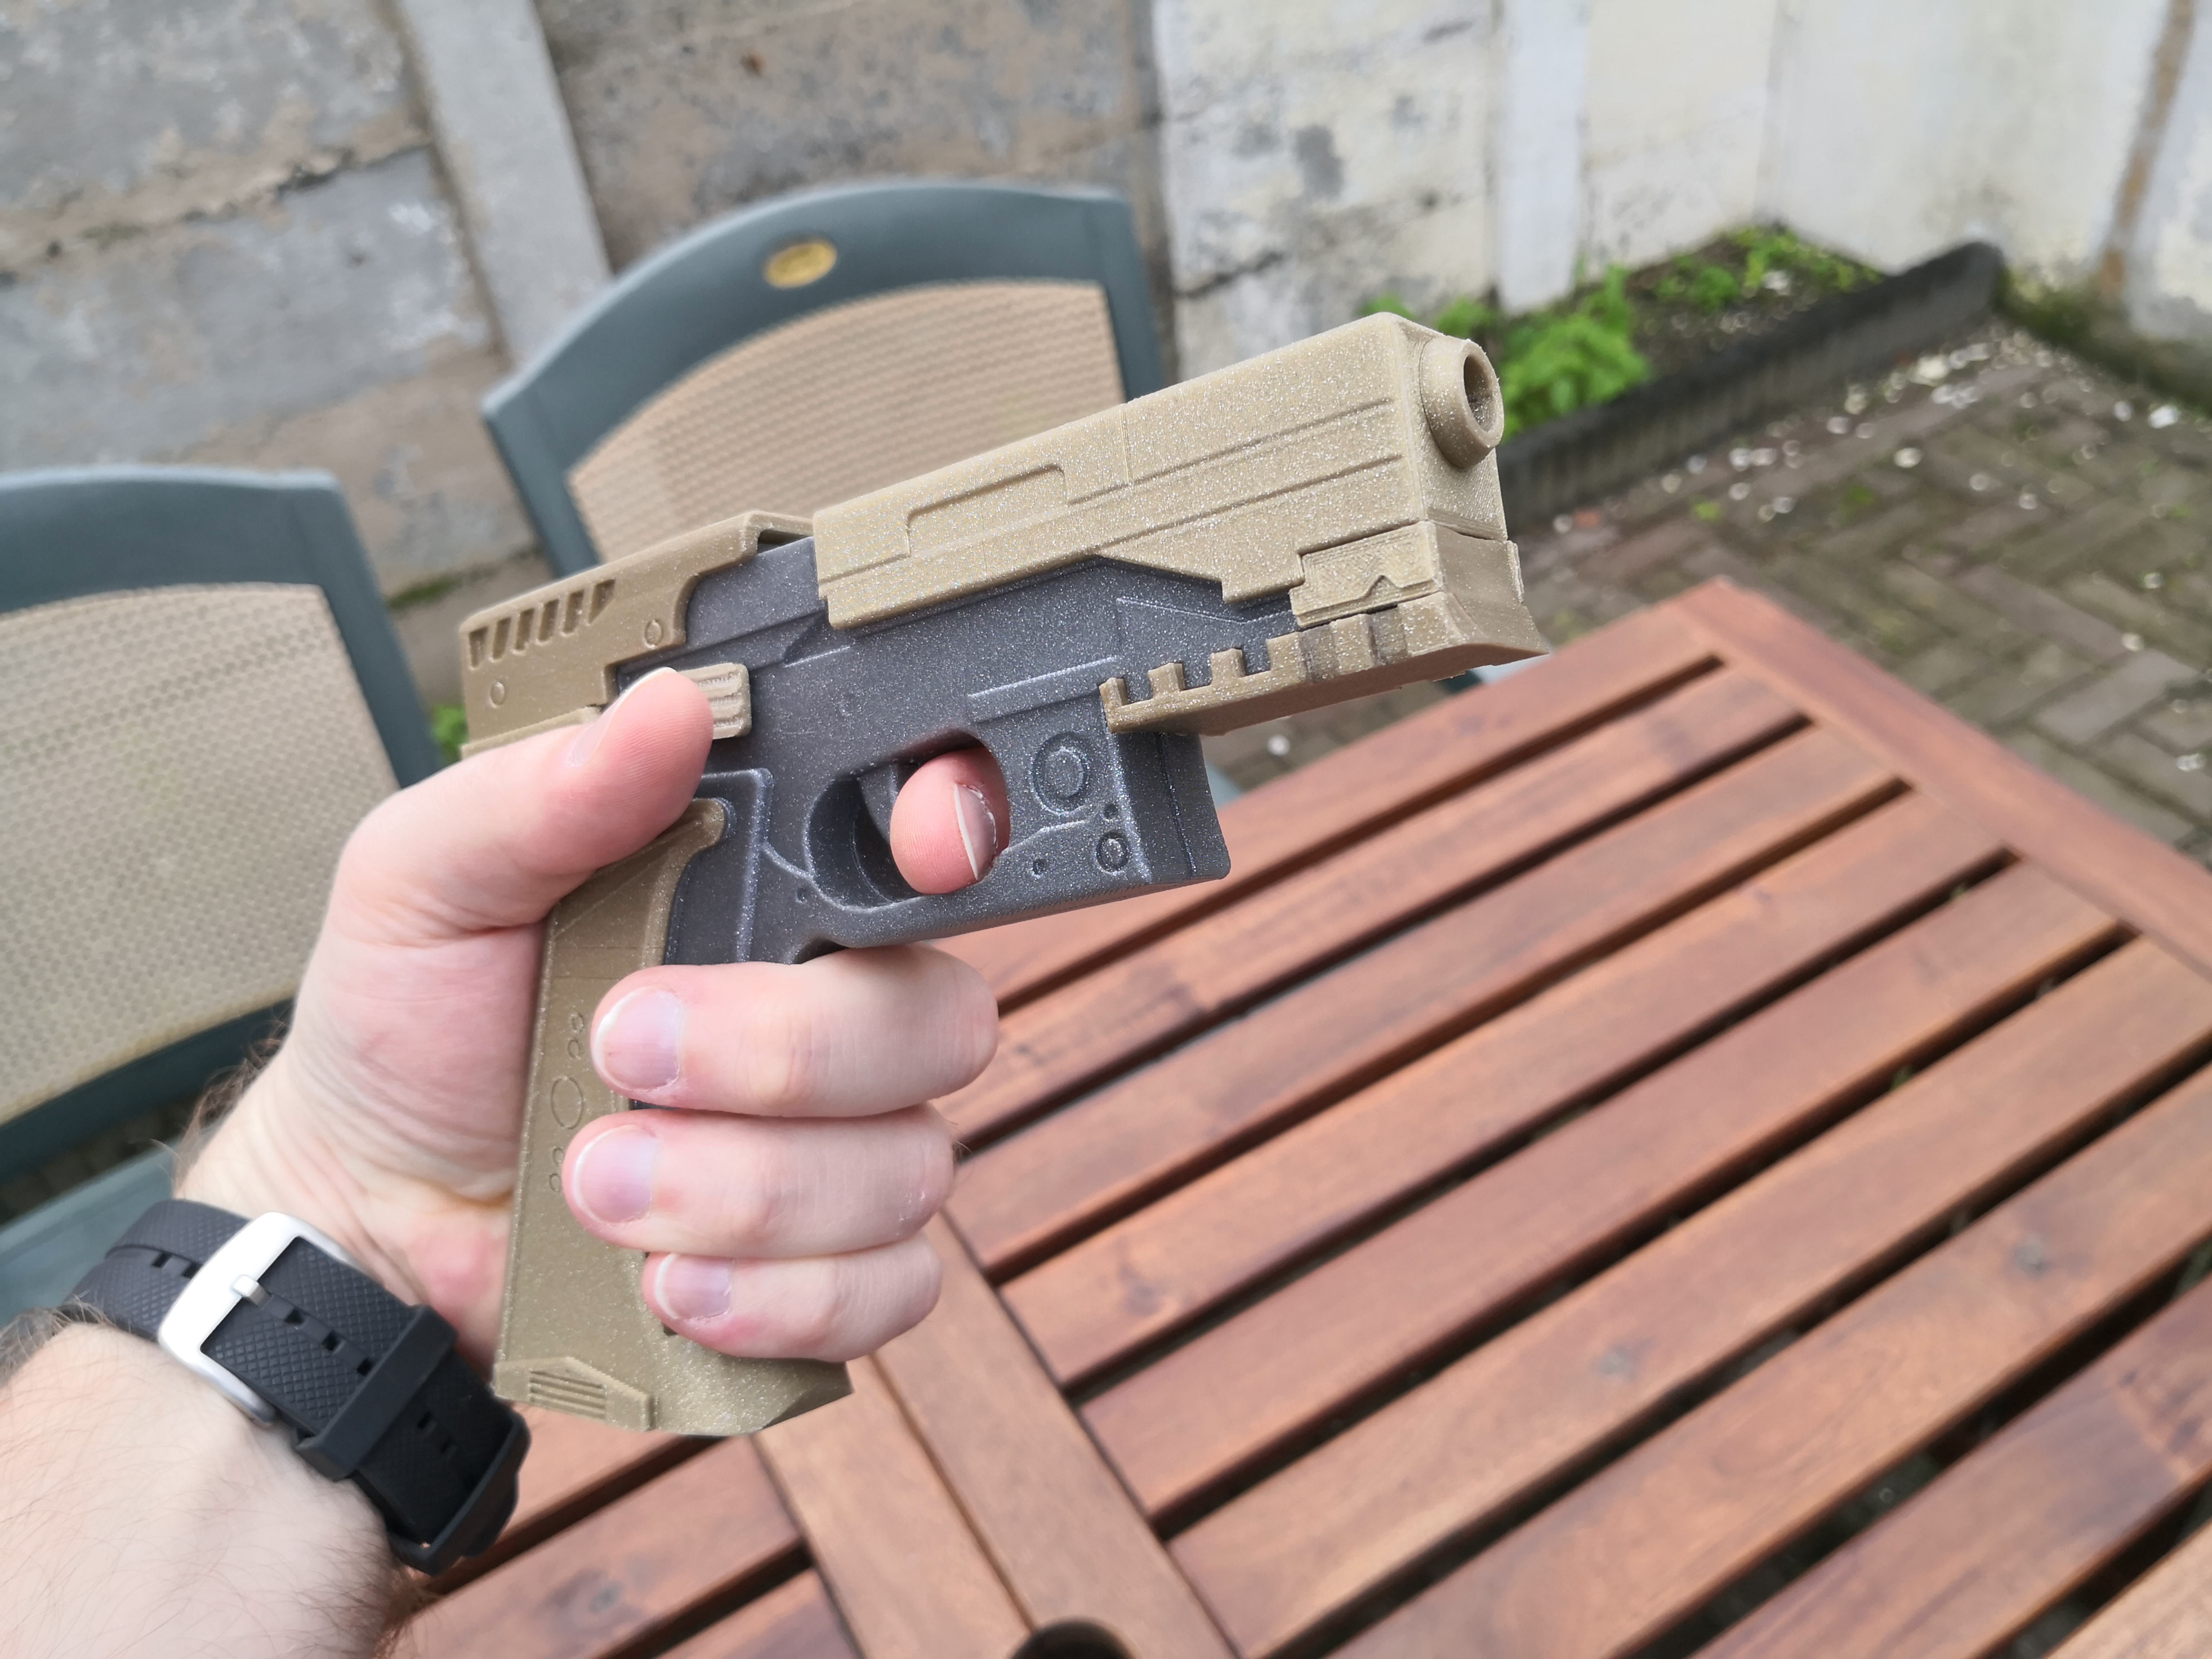 Major's Thermoptic Pistol - Ghost In The Shell by TinkeringT